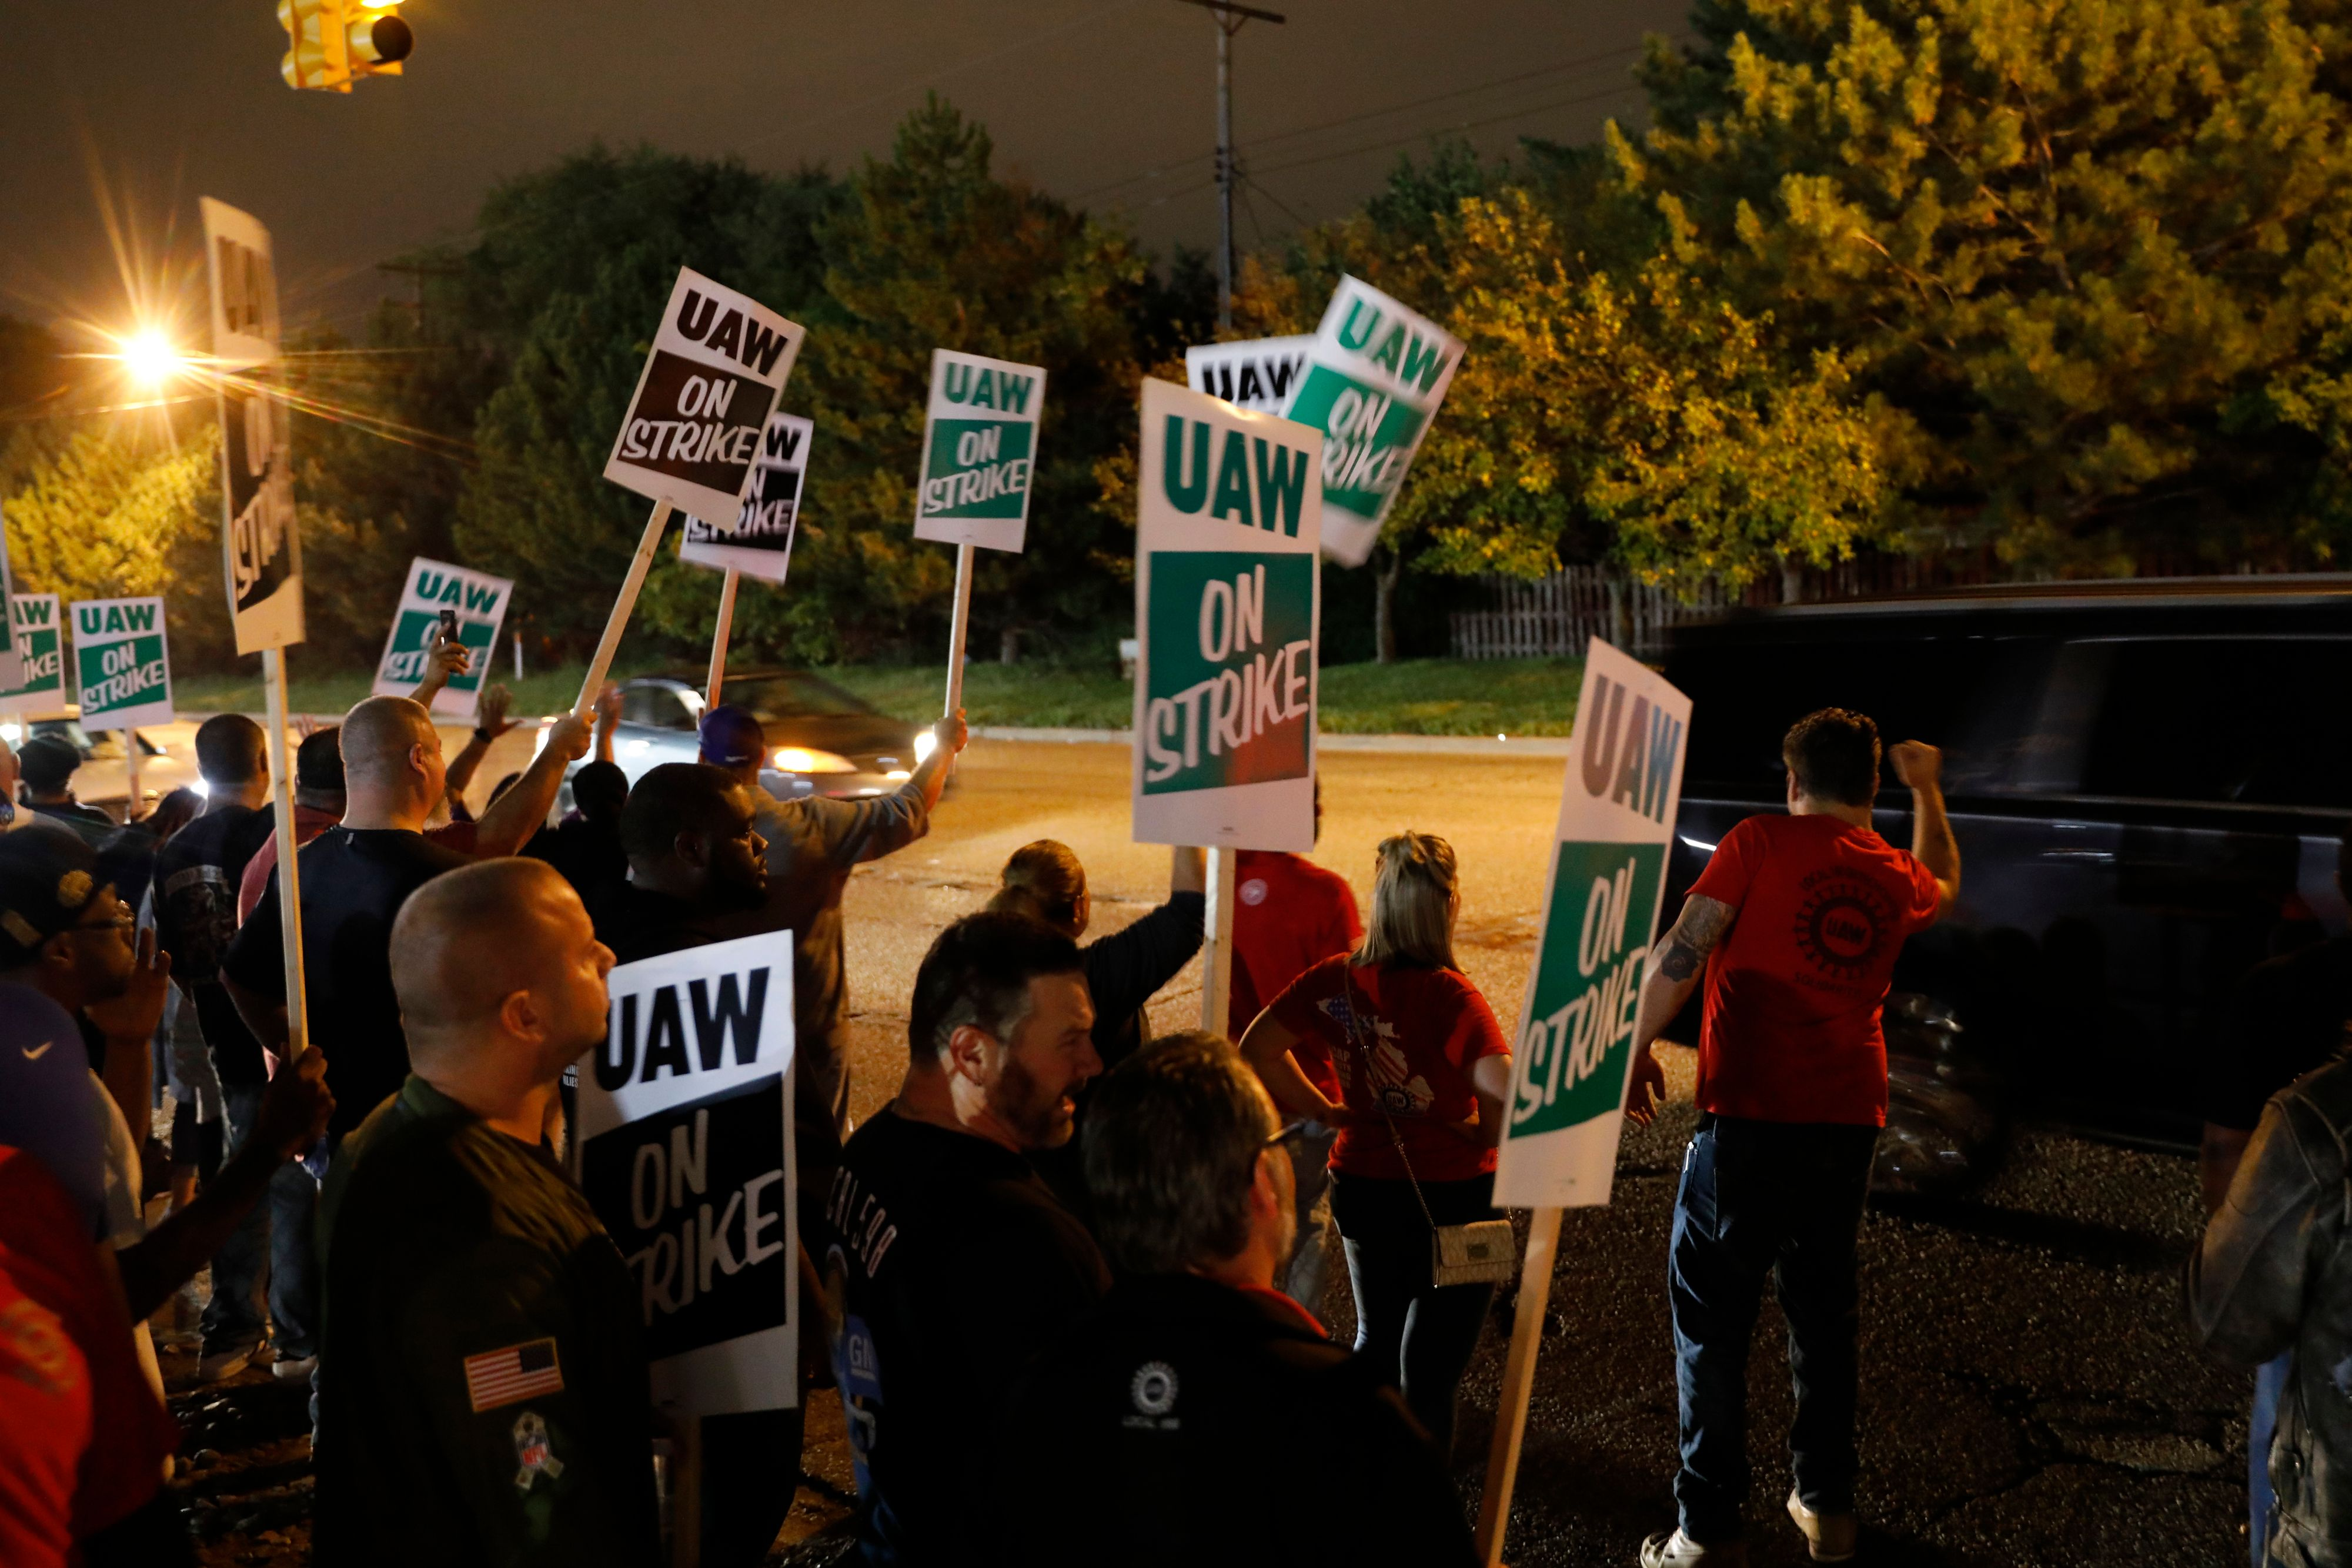 Members of the United Auto Workers (UAW) who are employed at the General Motors Co. Flint Assembly plant in Flint, Michigan, hold signs and cheer as workers drive out of the plant as they go on strike early on September 16, 2019. - The United Auto Workers union began a nationwide strike against General Motors on September 16, with some 46,000 members walking off the job after contract talks hit an impasse. (Photo by JEFF KOWALSKY / AFP) (Photo credit should read JEFF KOWALSKY/AFP/Getty Images)